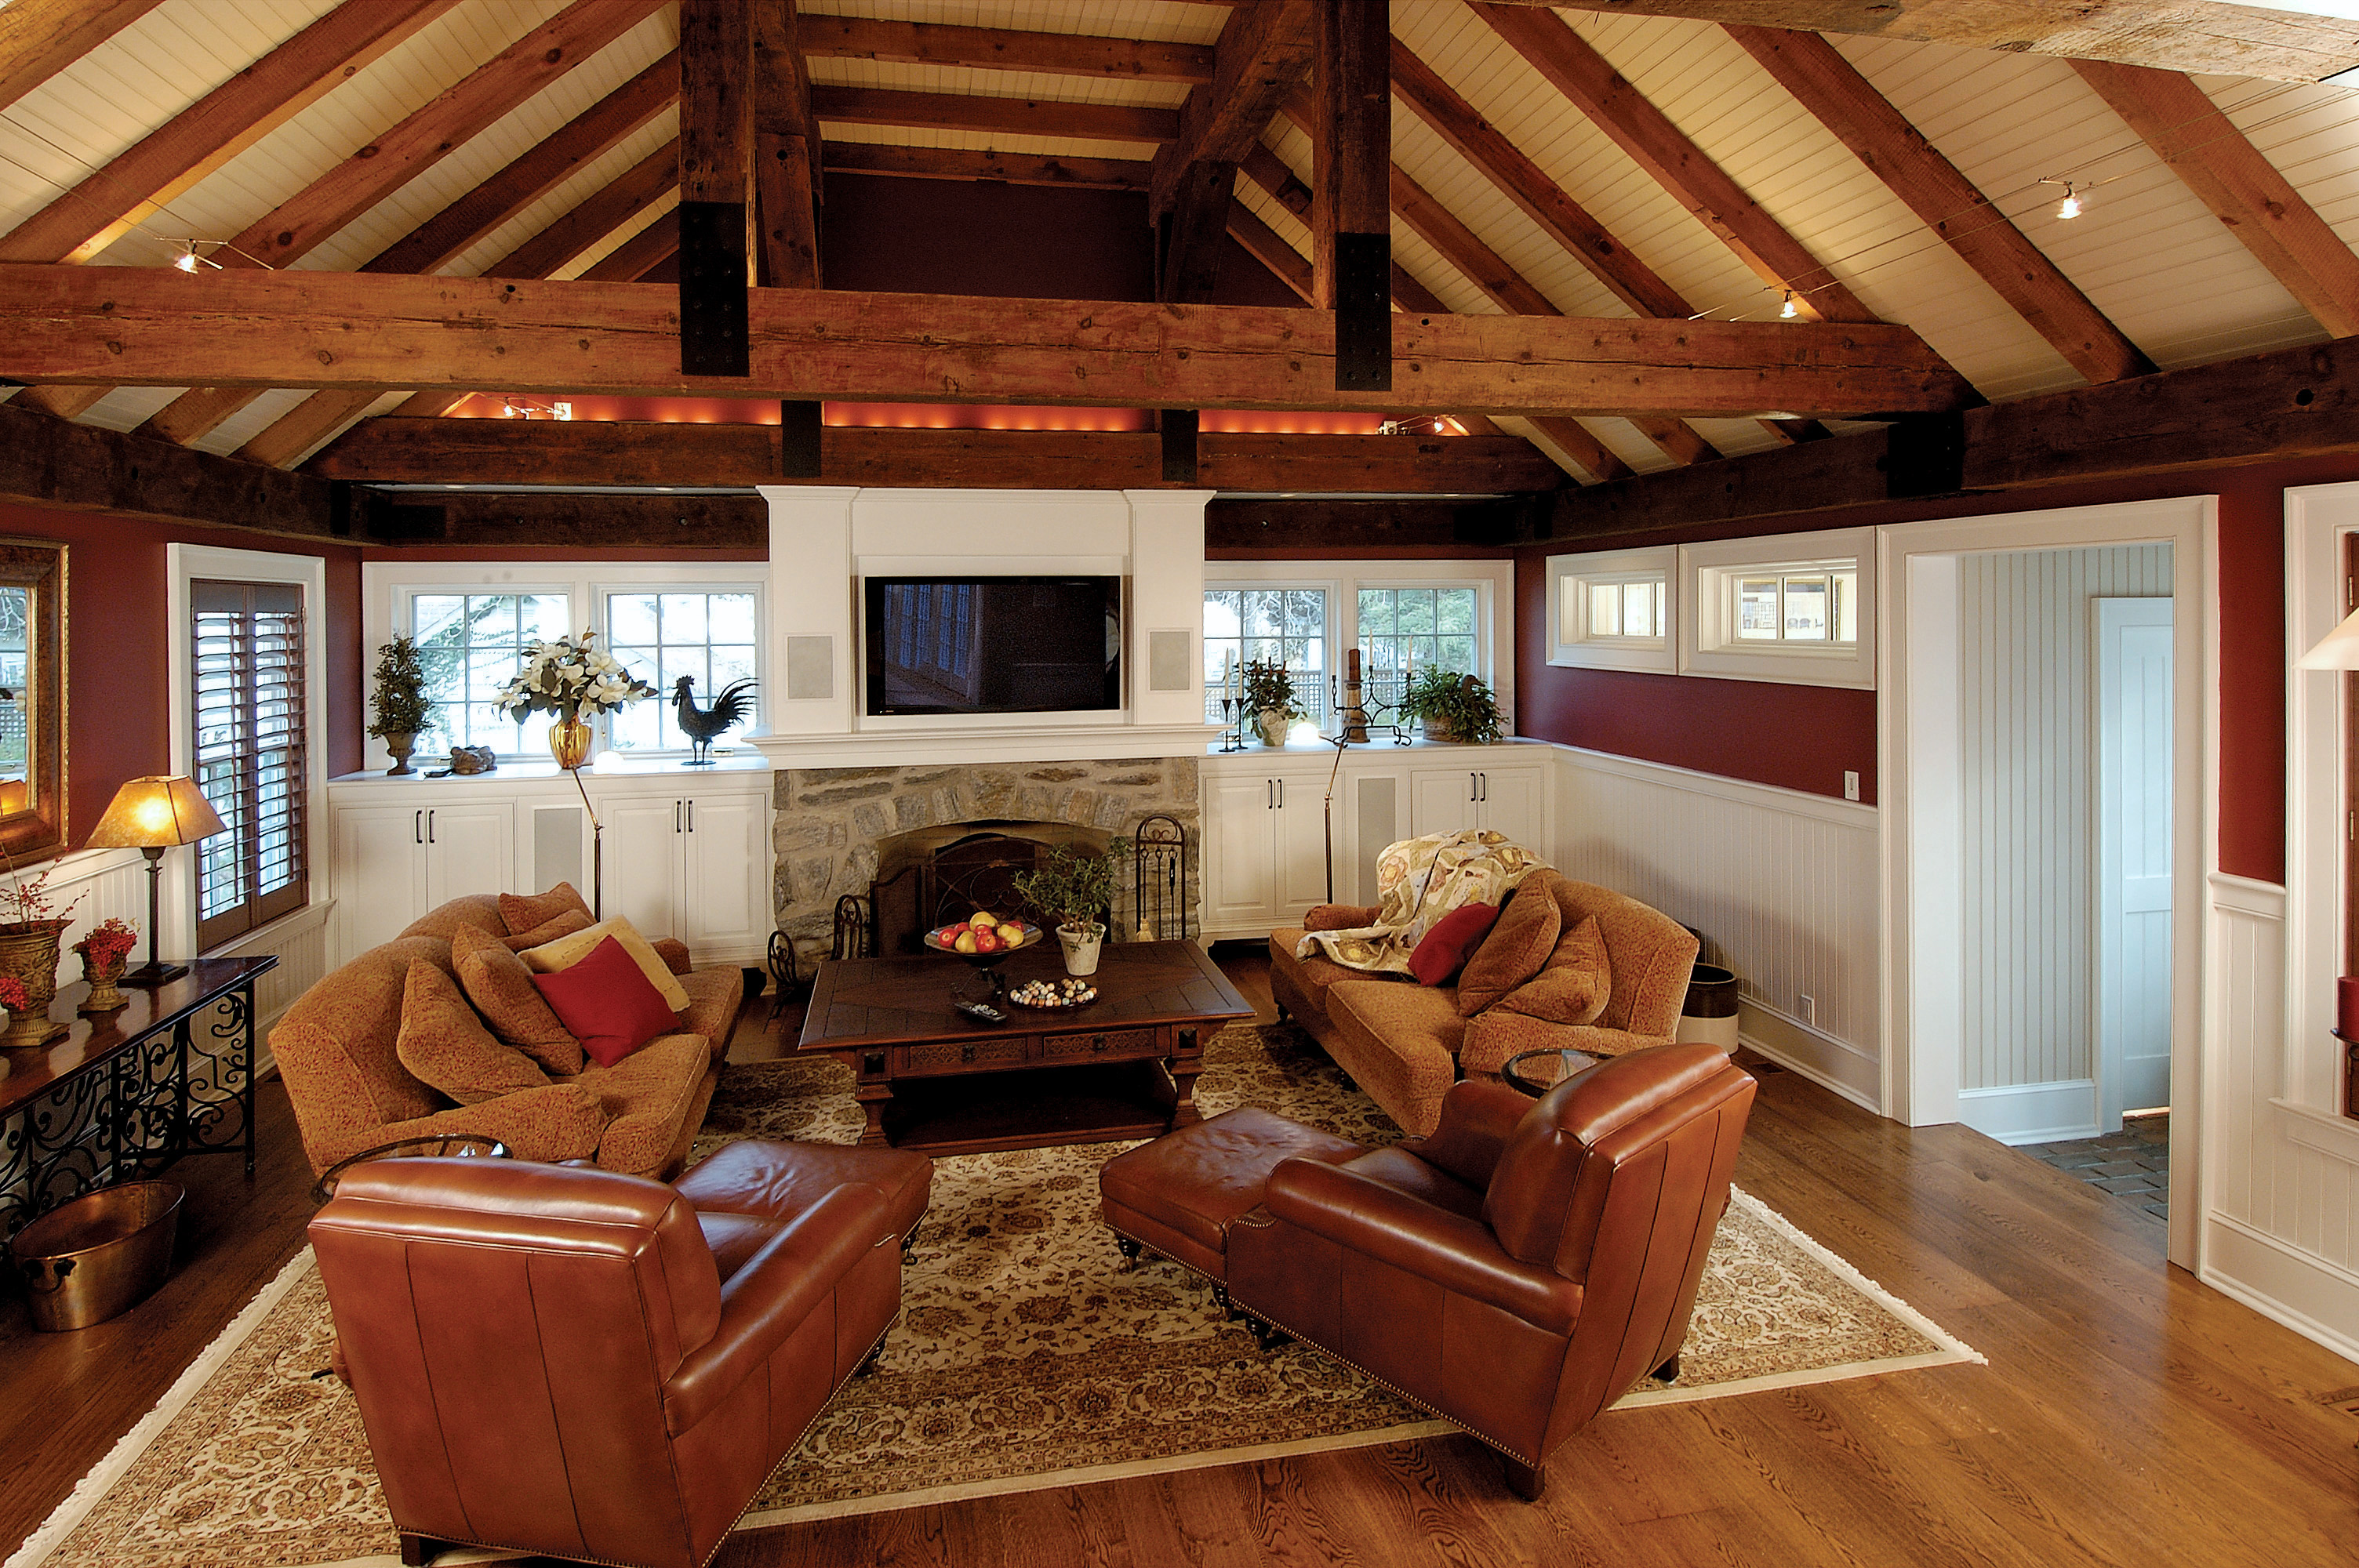 Family room addition with rustic beams and vaulted ceiling Great room additions